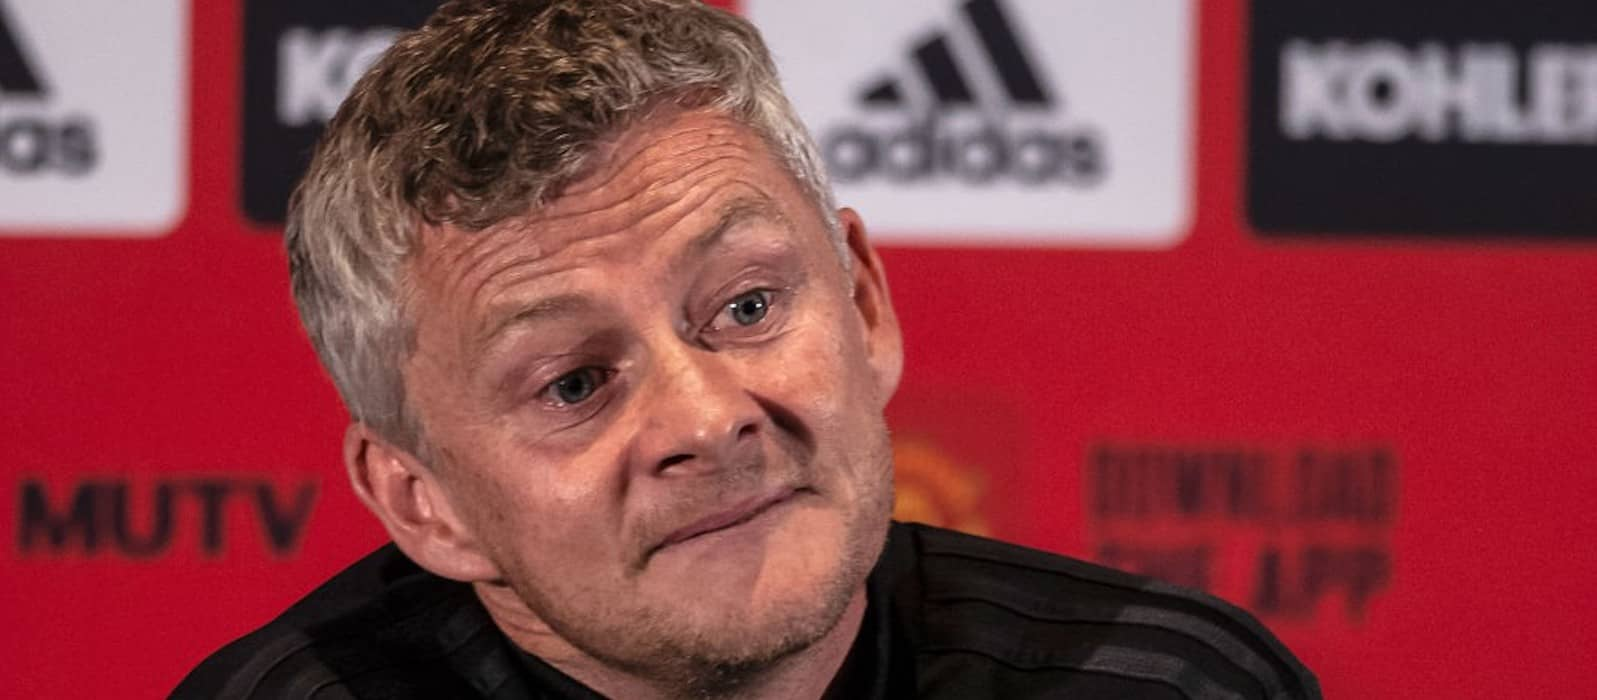 Ole Gunnar Solskjaer holds conference call with Ed Woodward over transfers – report